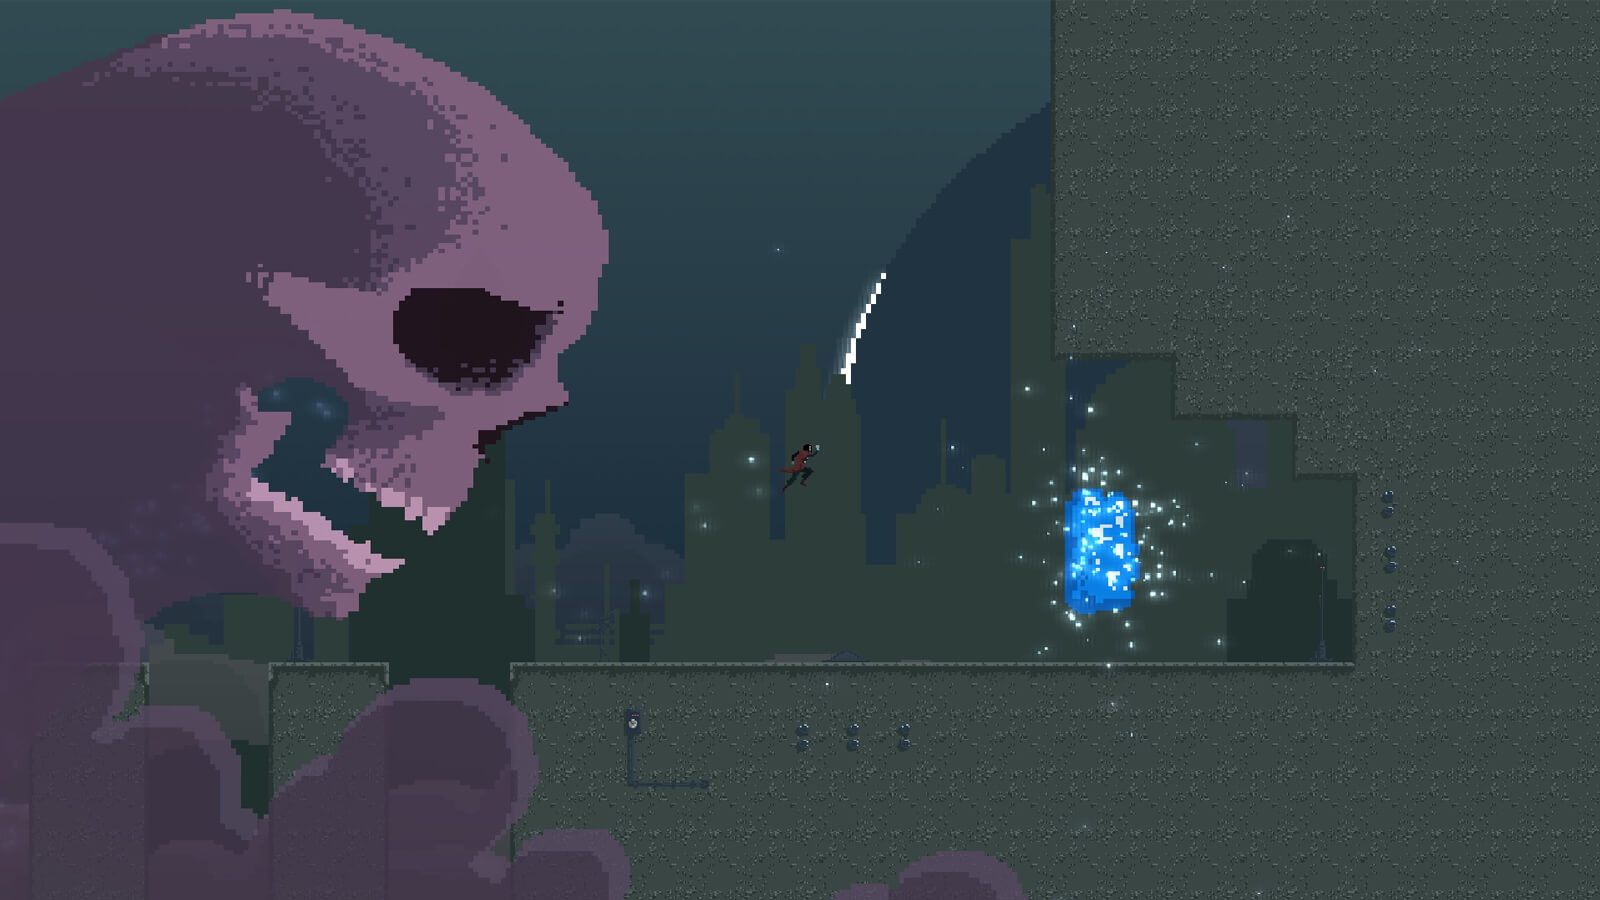 Polaris jumps towards a glistening blue object as a large skull pursues.